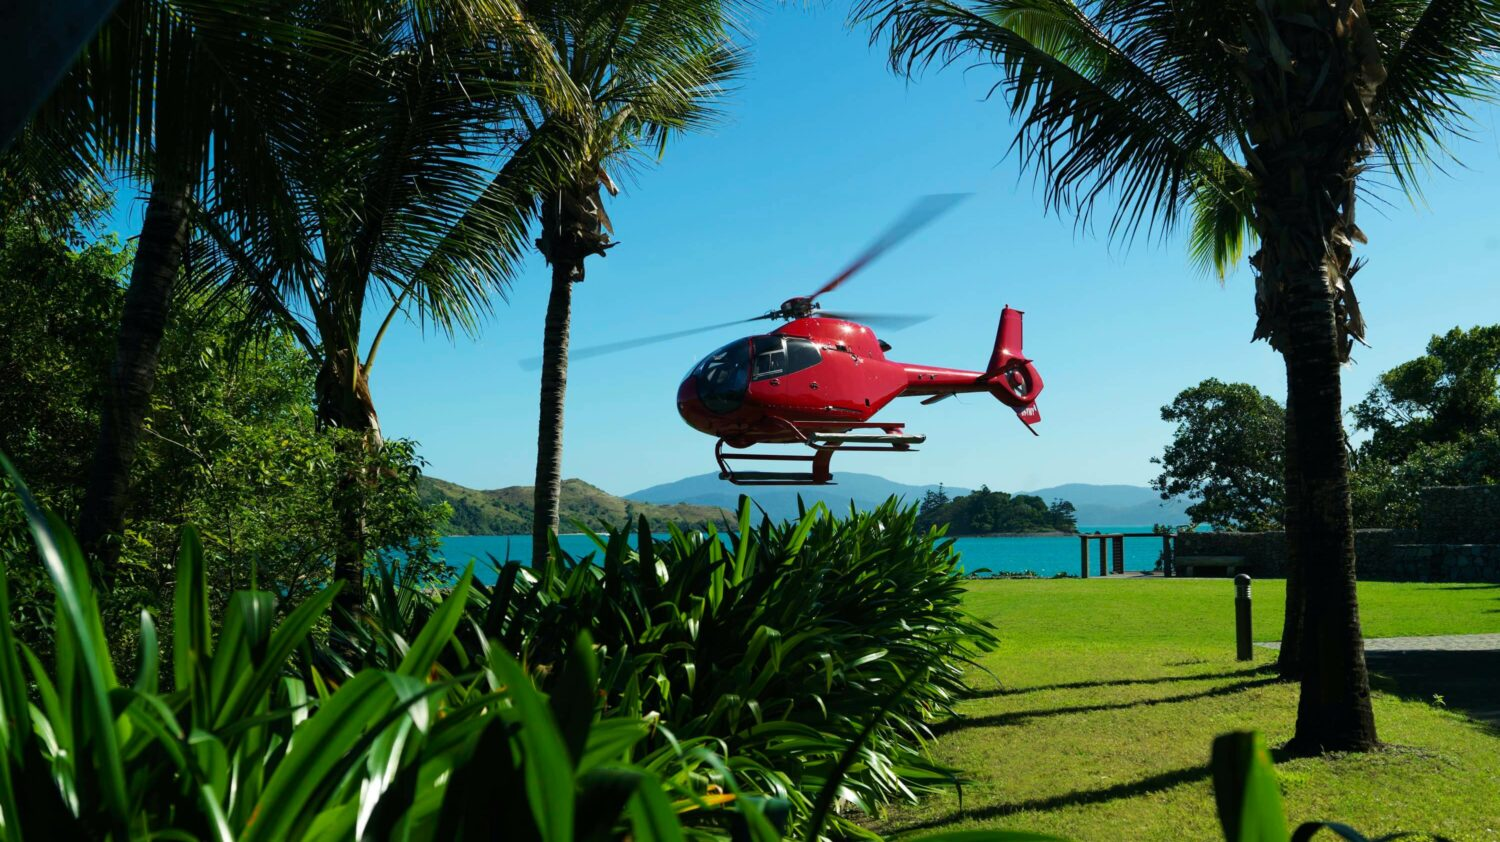 helicopter tour-qualia resort australia